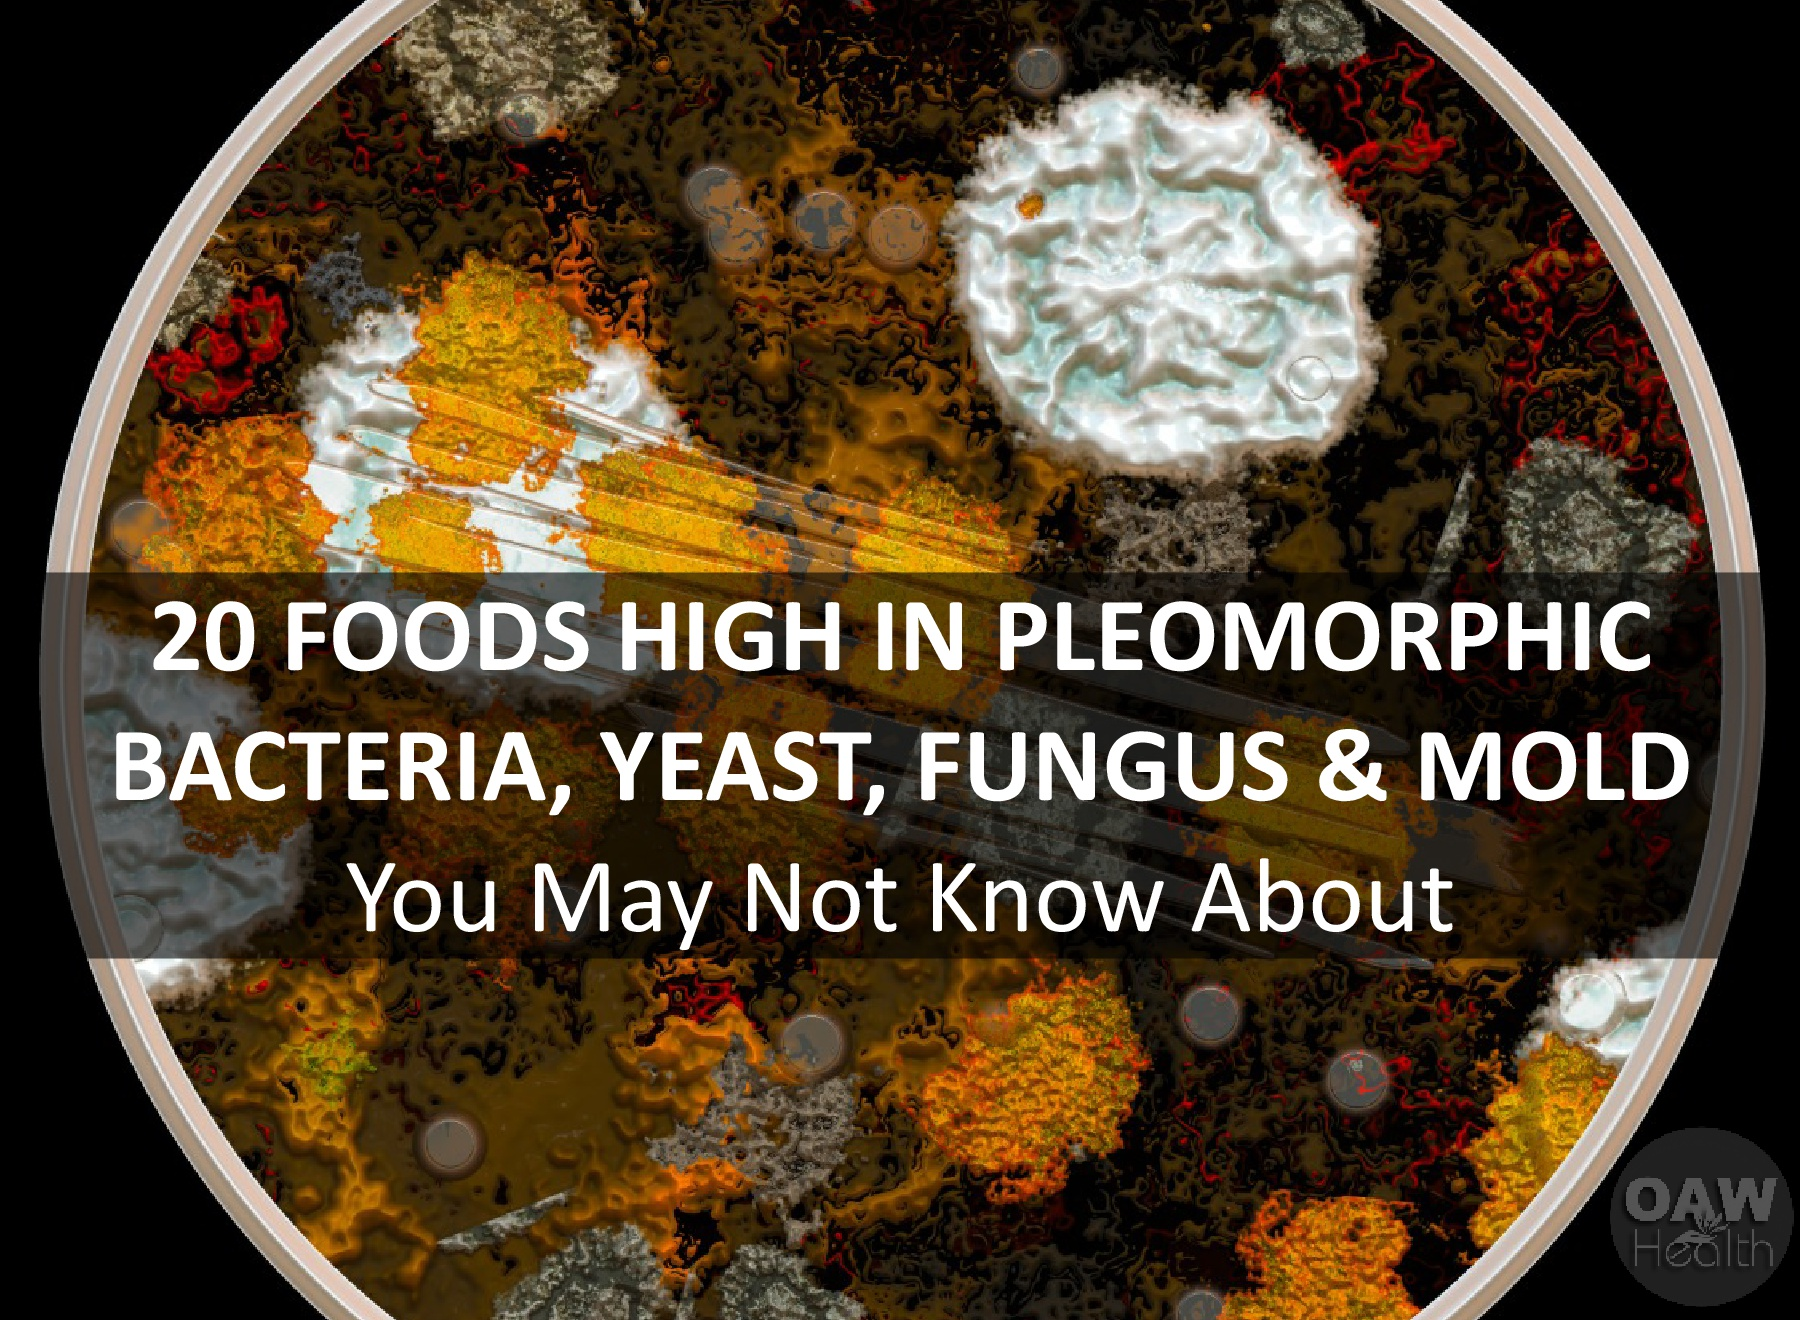 20 Foods High in Pleomorphic Bacteria, Yeast, Fungus and Mold You May Not Know About